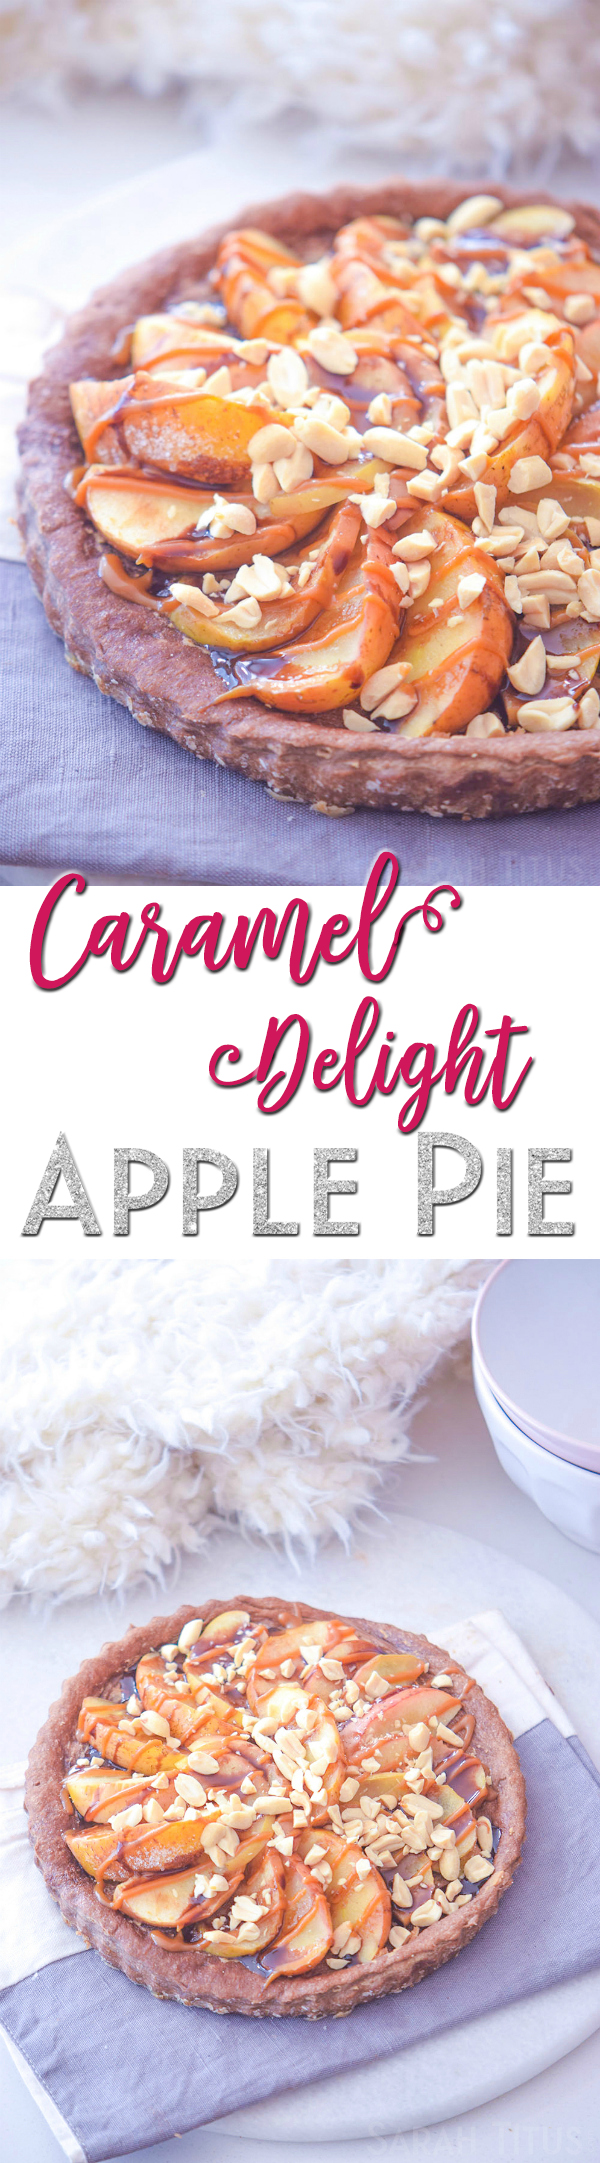 This Caramel Delight Apple Pie is a combination of caramel apples and your favorite baked apple pie. It's creamy, delicious, and perfect for the holidays!